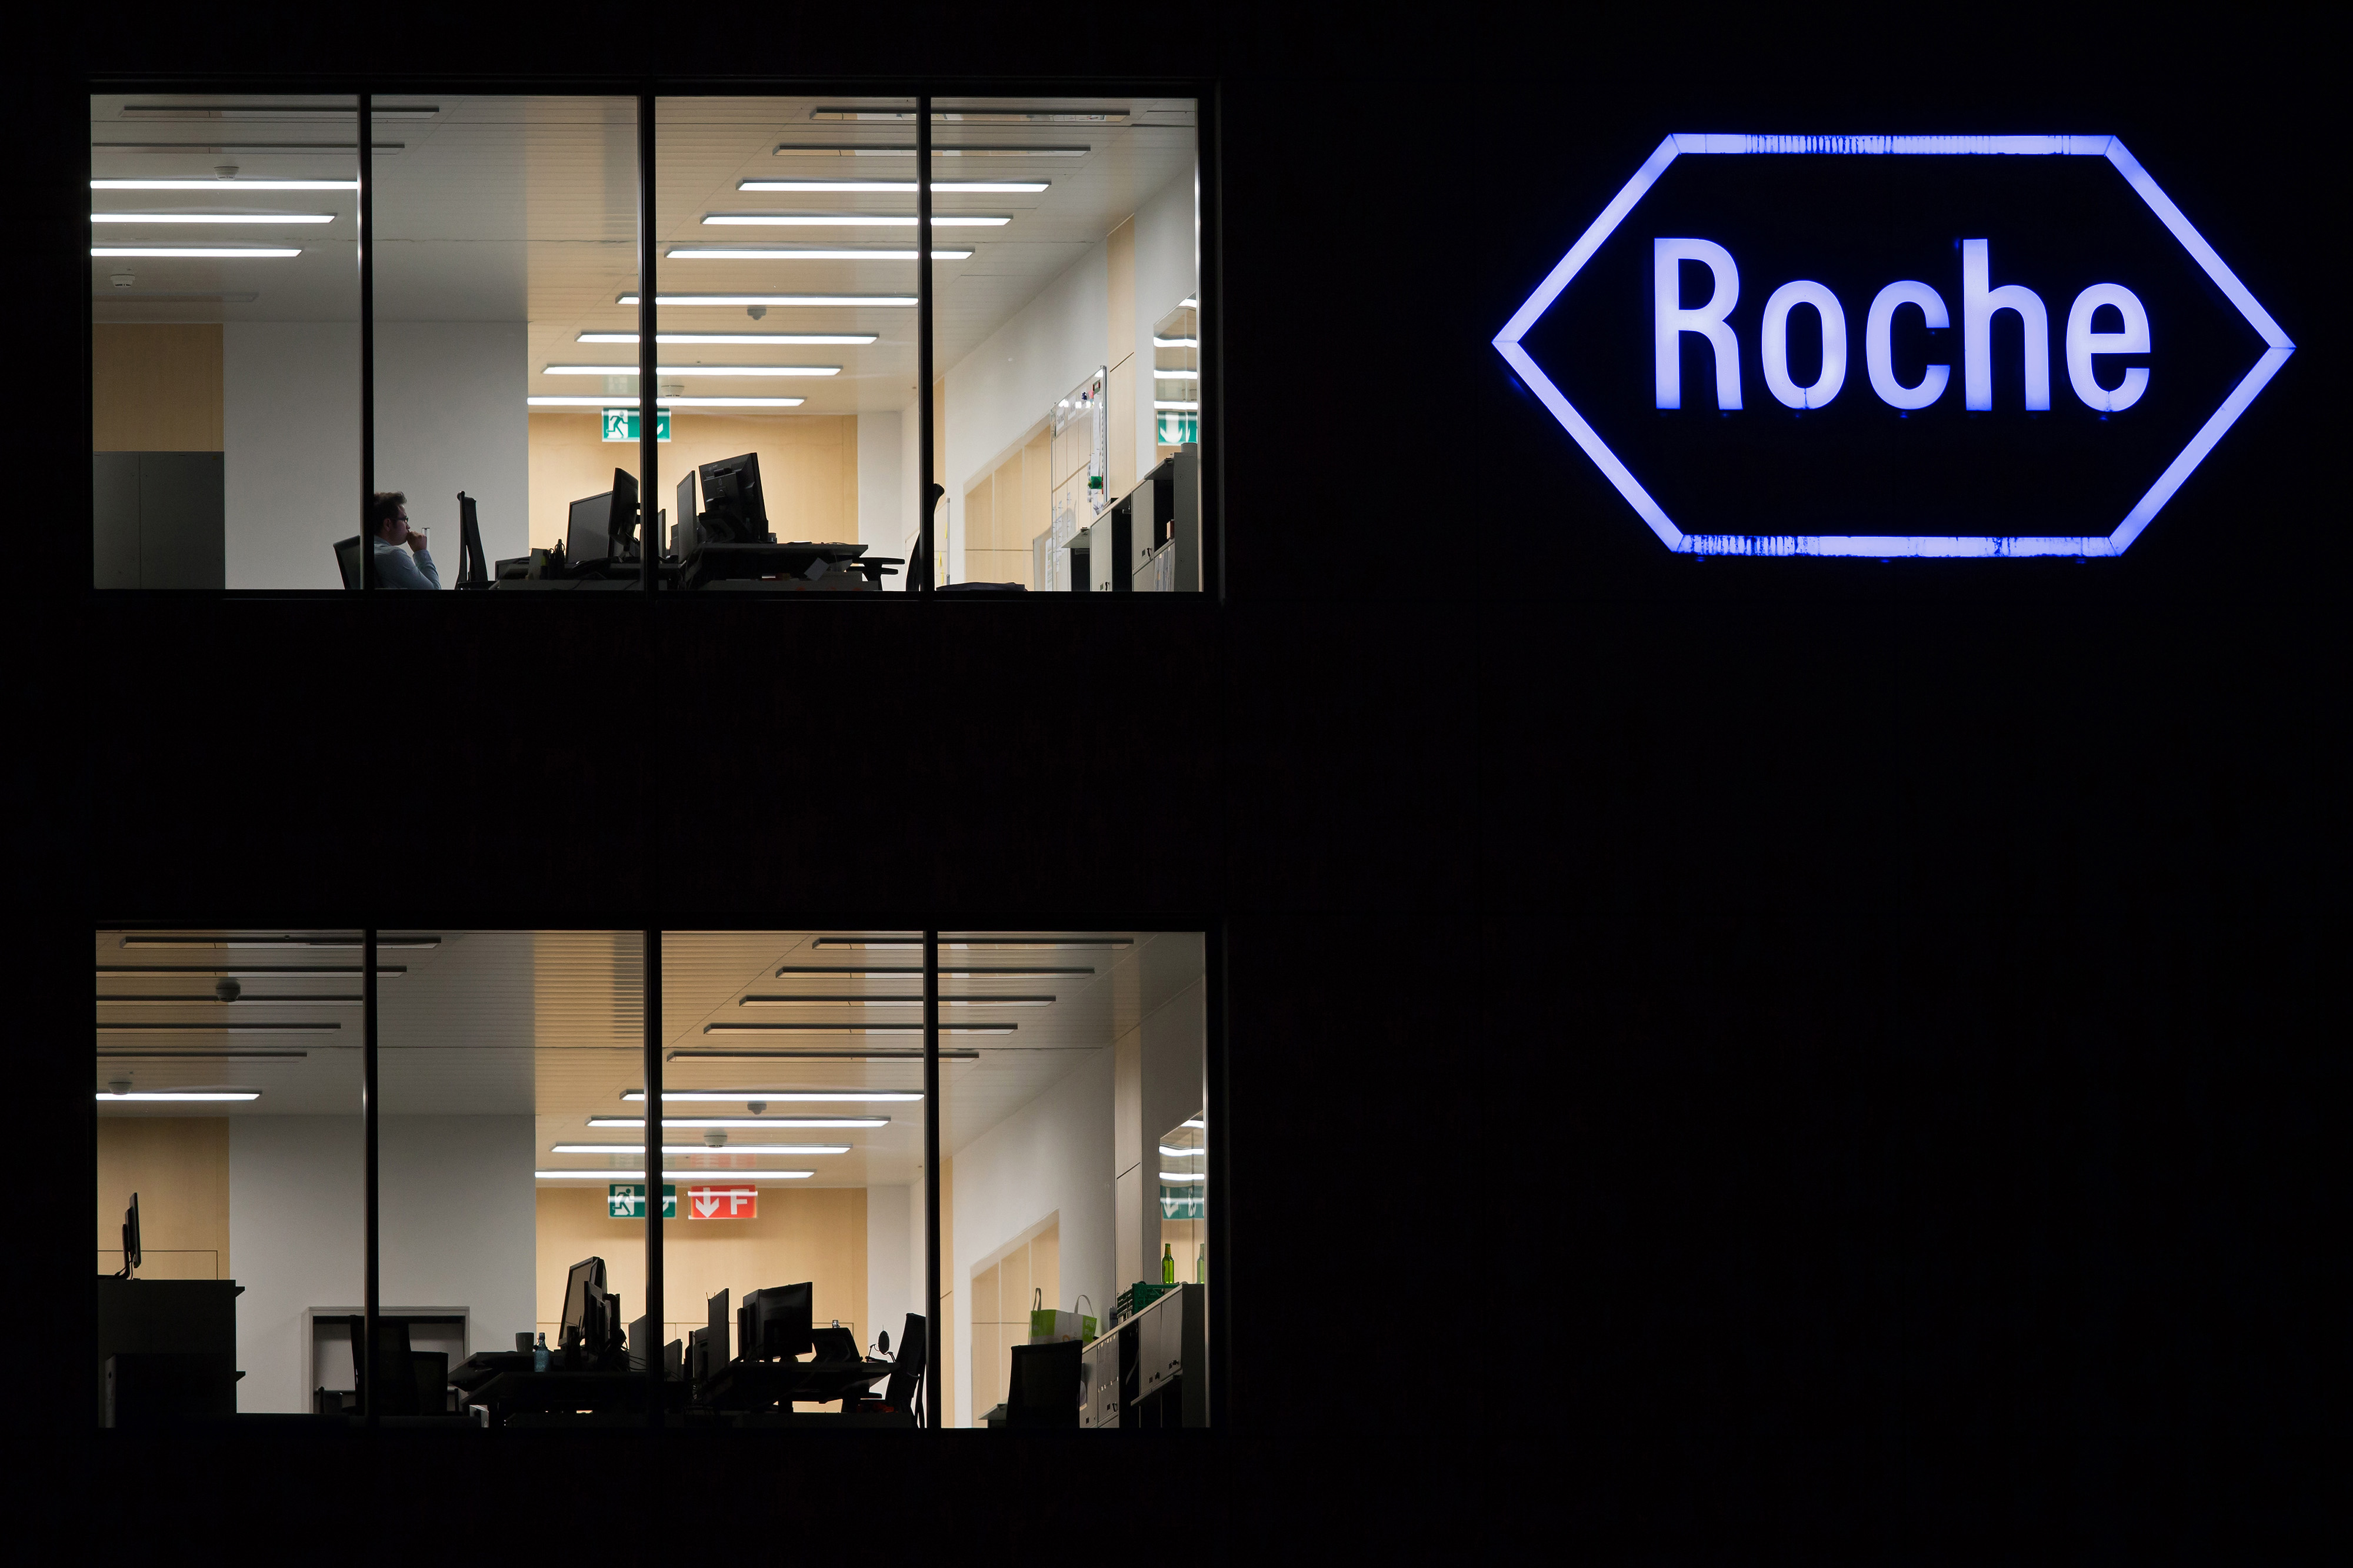 Roche Holding AG's Headquarters As Drugmaker Acquires InterMune Inc. For $8.3 Billion